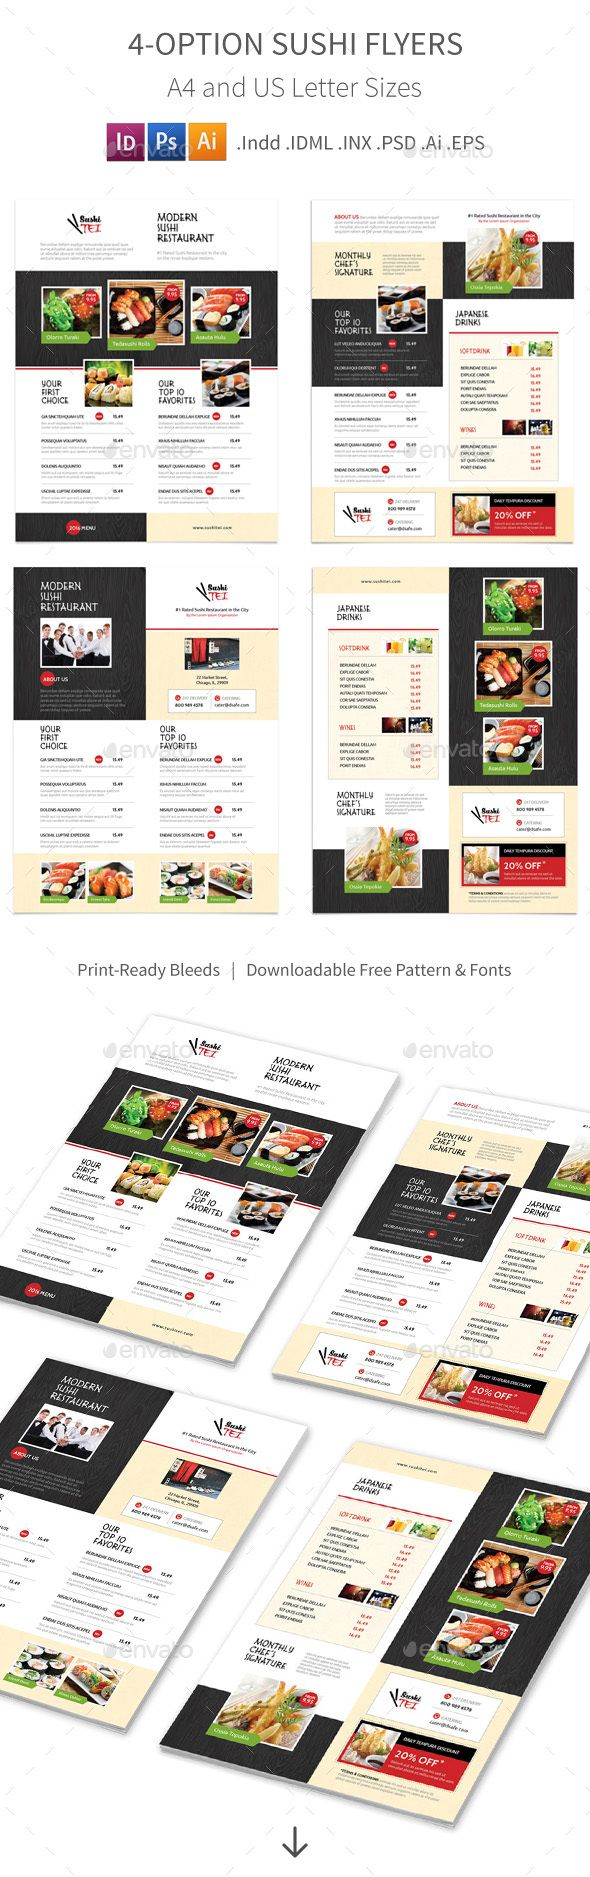 25 best ideas about sushi menu on pinterest